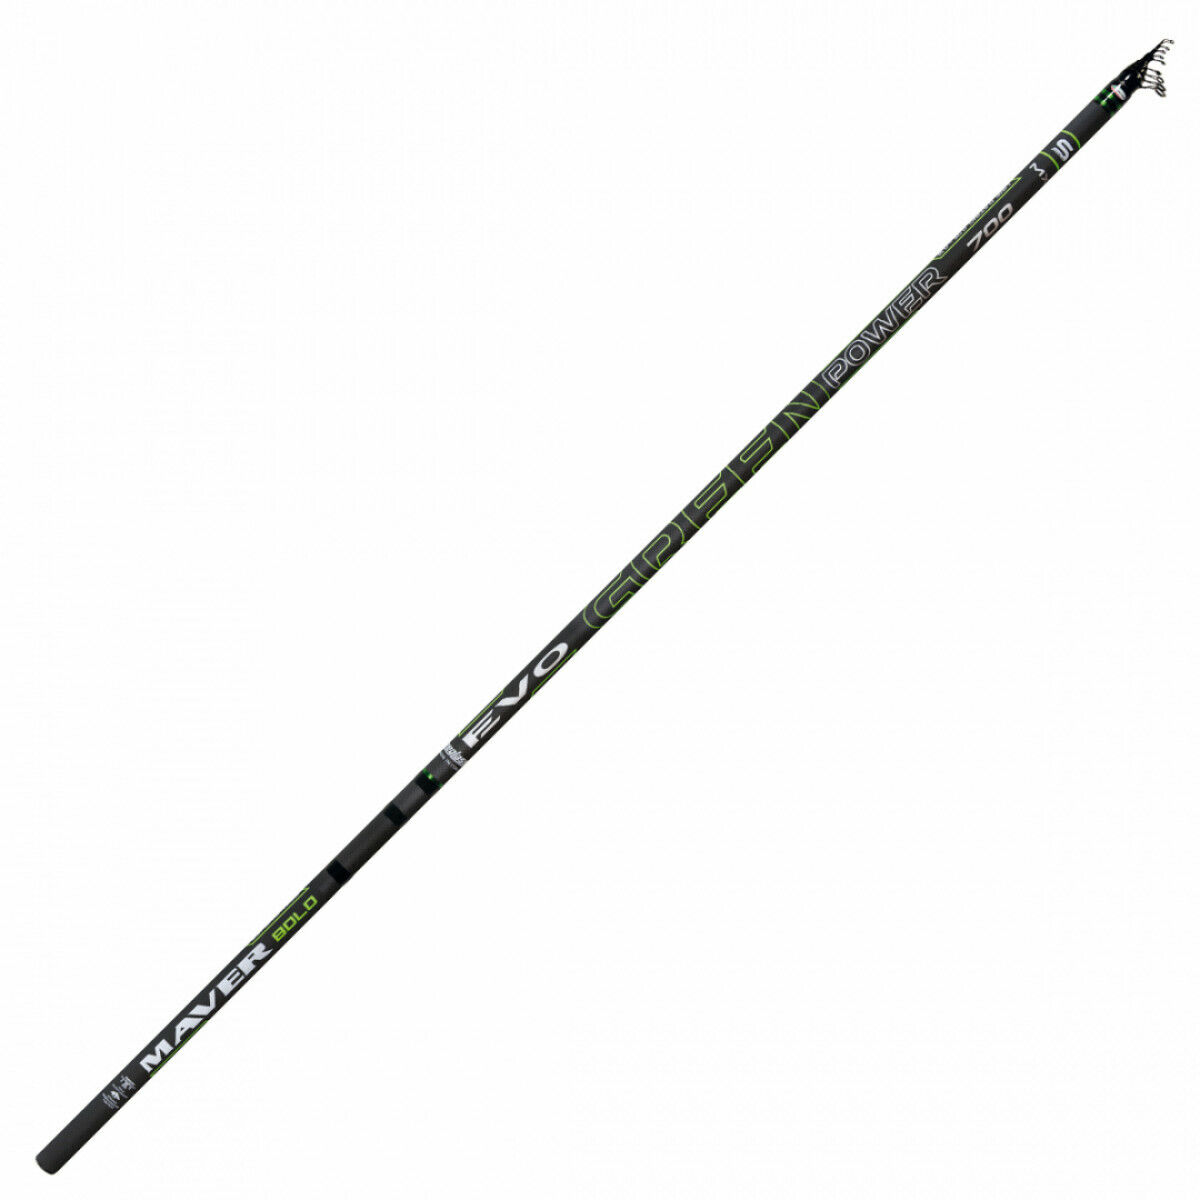 CANNA DA PESCA MAVER EVO GREEN POWER